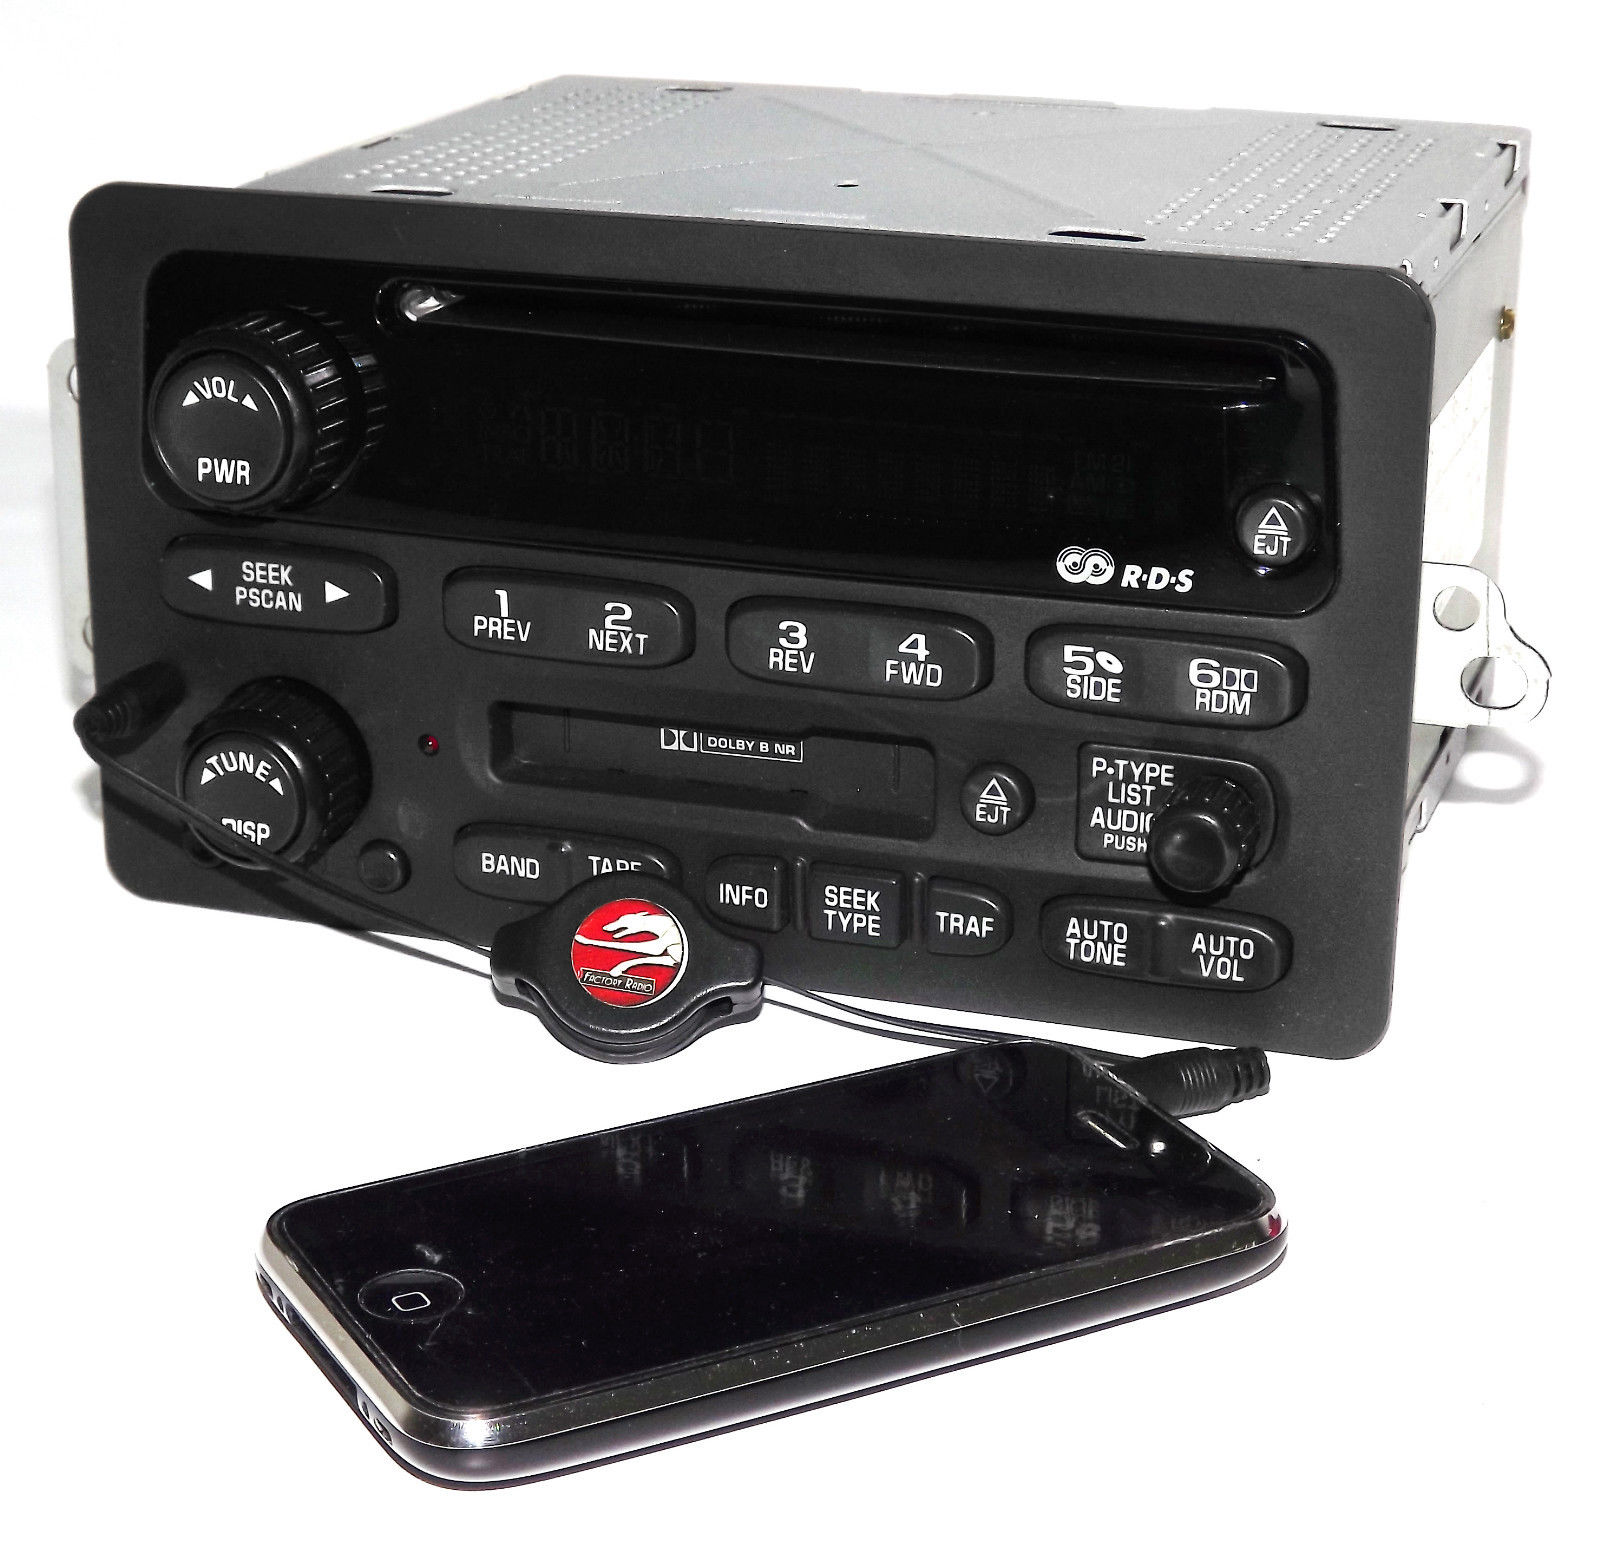 Chevy 2000-05 Car Radio AM FM CD Cassette Player w Aux iPod mp3 Input 10318438 Refurbished by GM